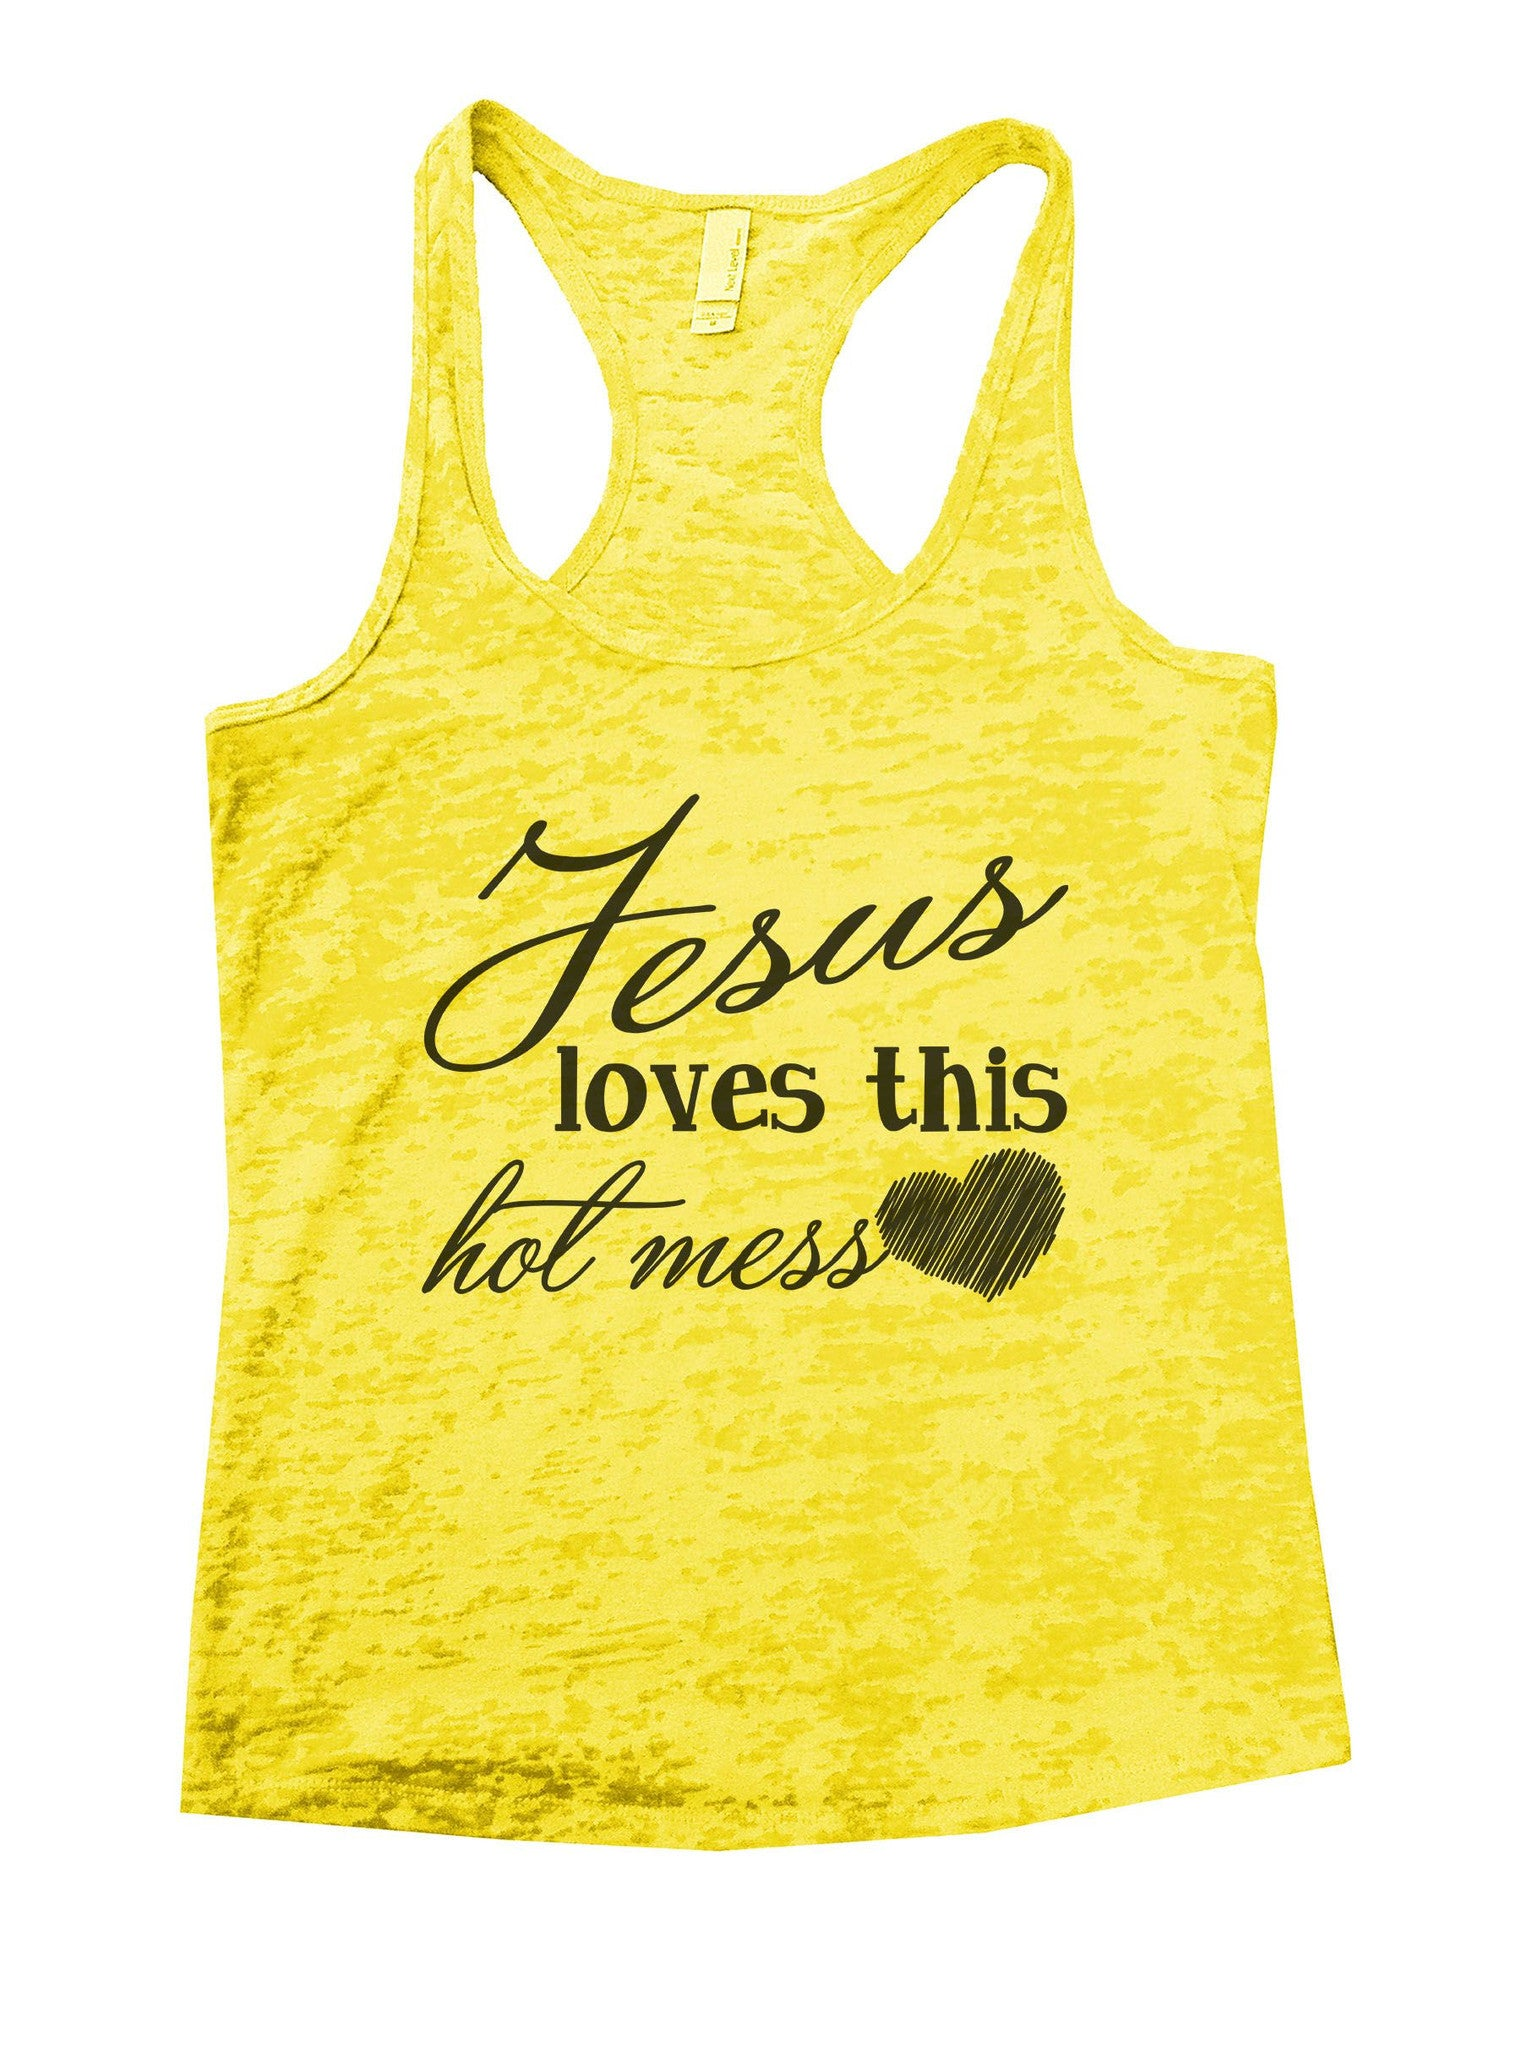 Jesus Loves This Hot Mess Burnout Tank Top By BurnoutTankTops.com - 891 - Funny Shirts Tank Tops Burnouts and Triblends  - 6